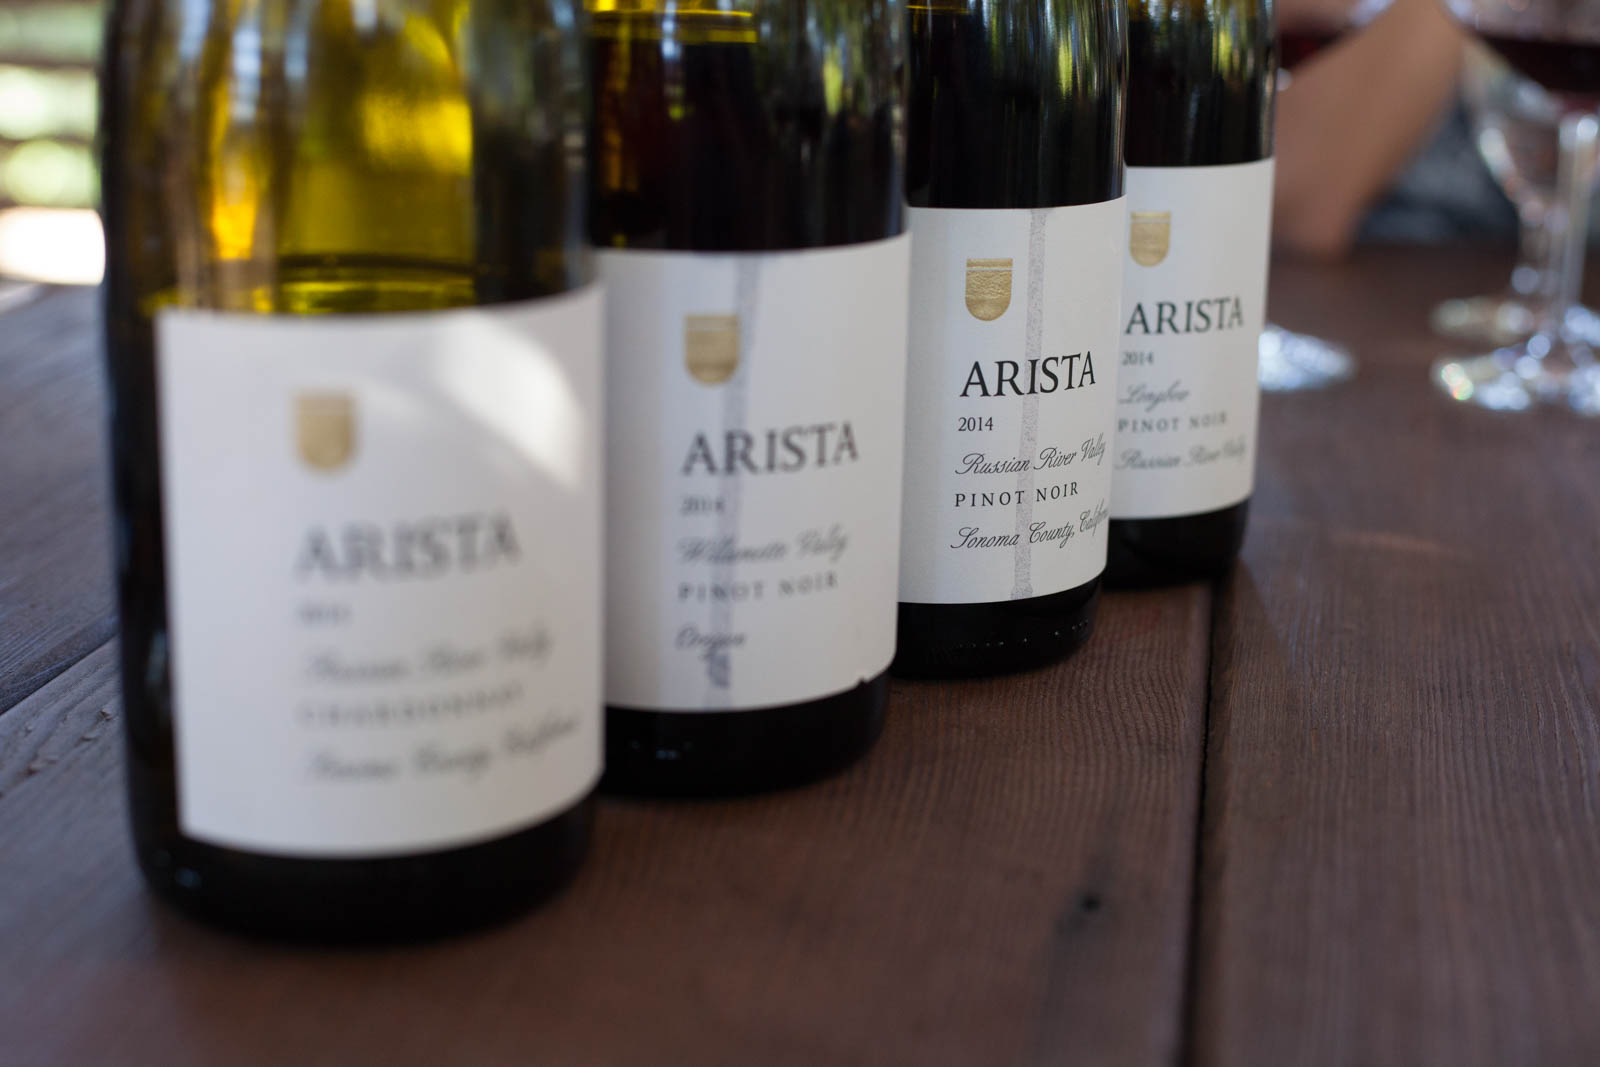 Bottles of wine at a wine tasting at Arista Winery. ©Kevin Day / Opening a Bottle